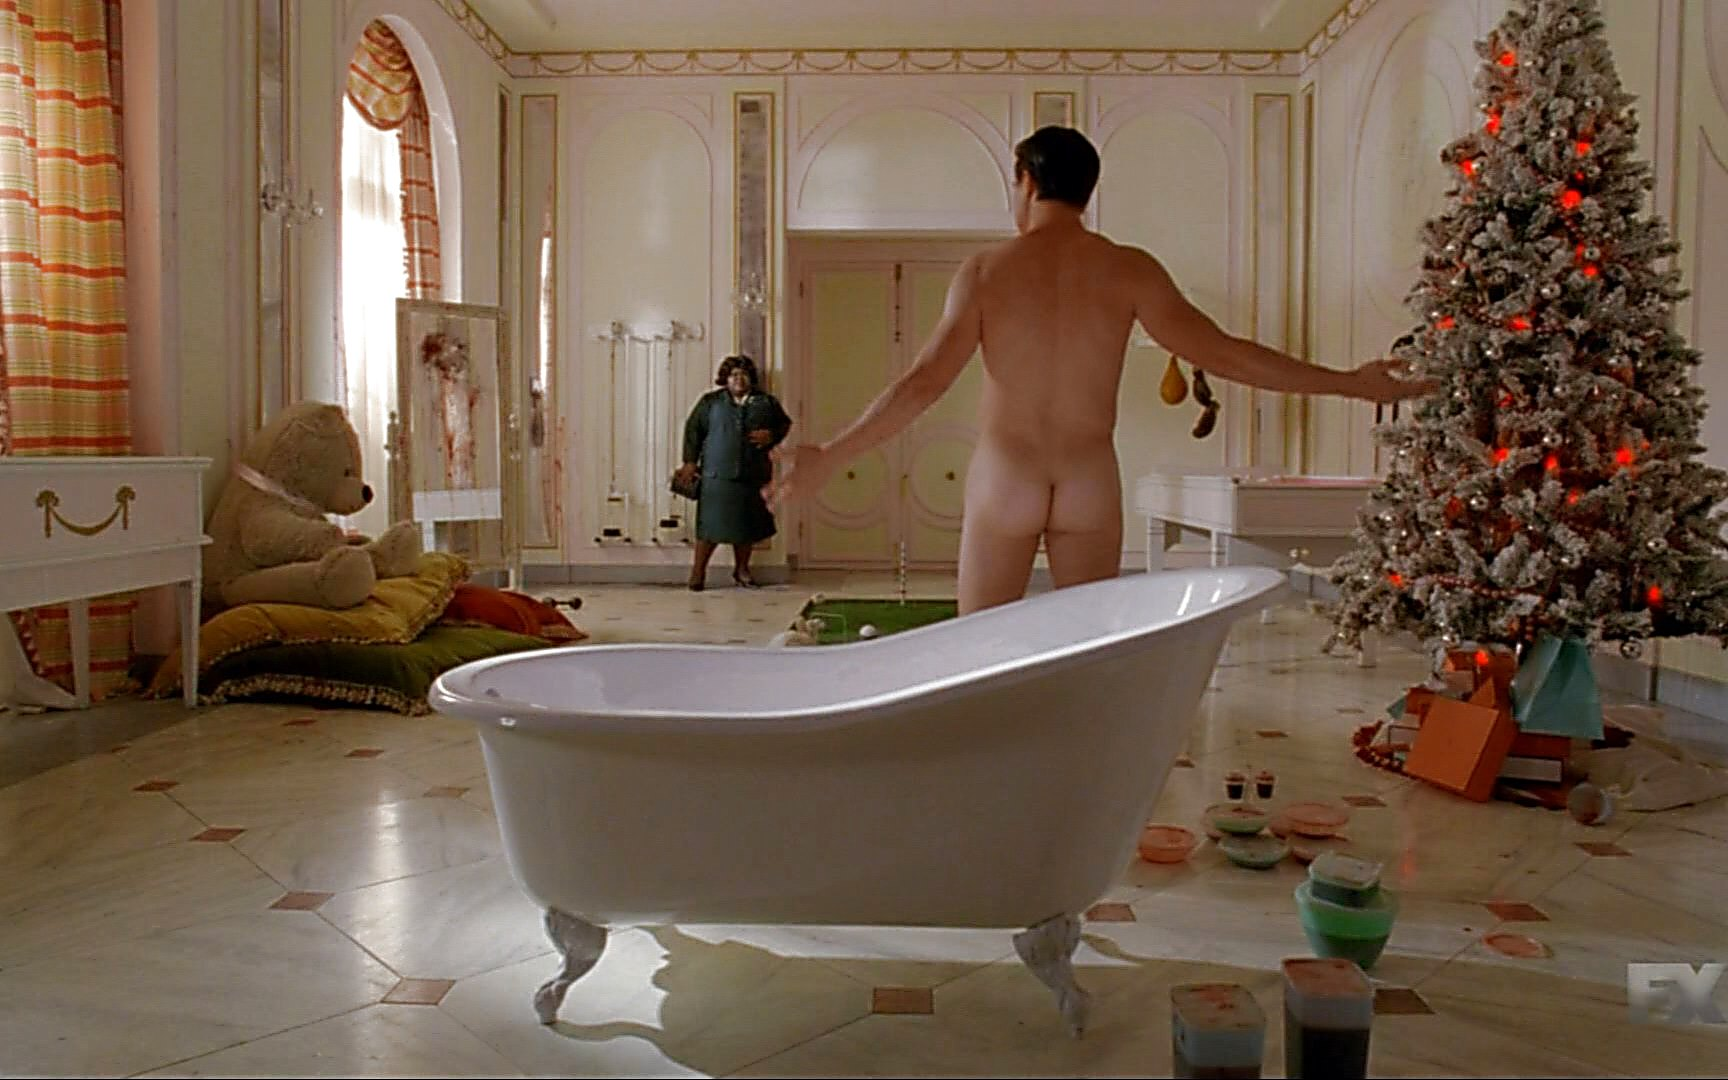 Finn Wittrock sexy shirtless scene January 3, 2015, 2pm